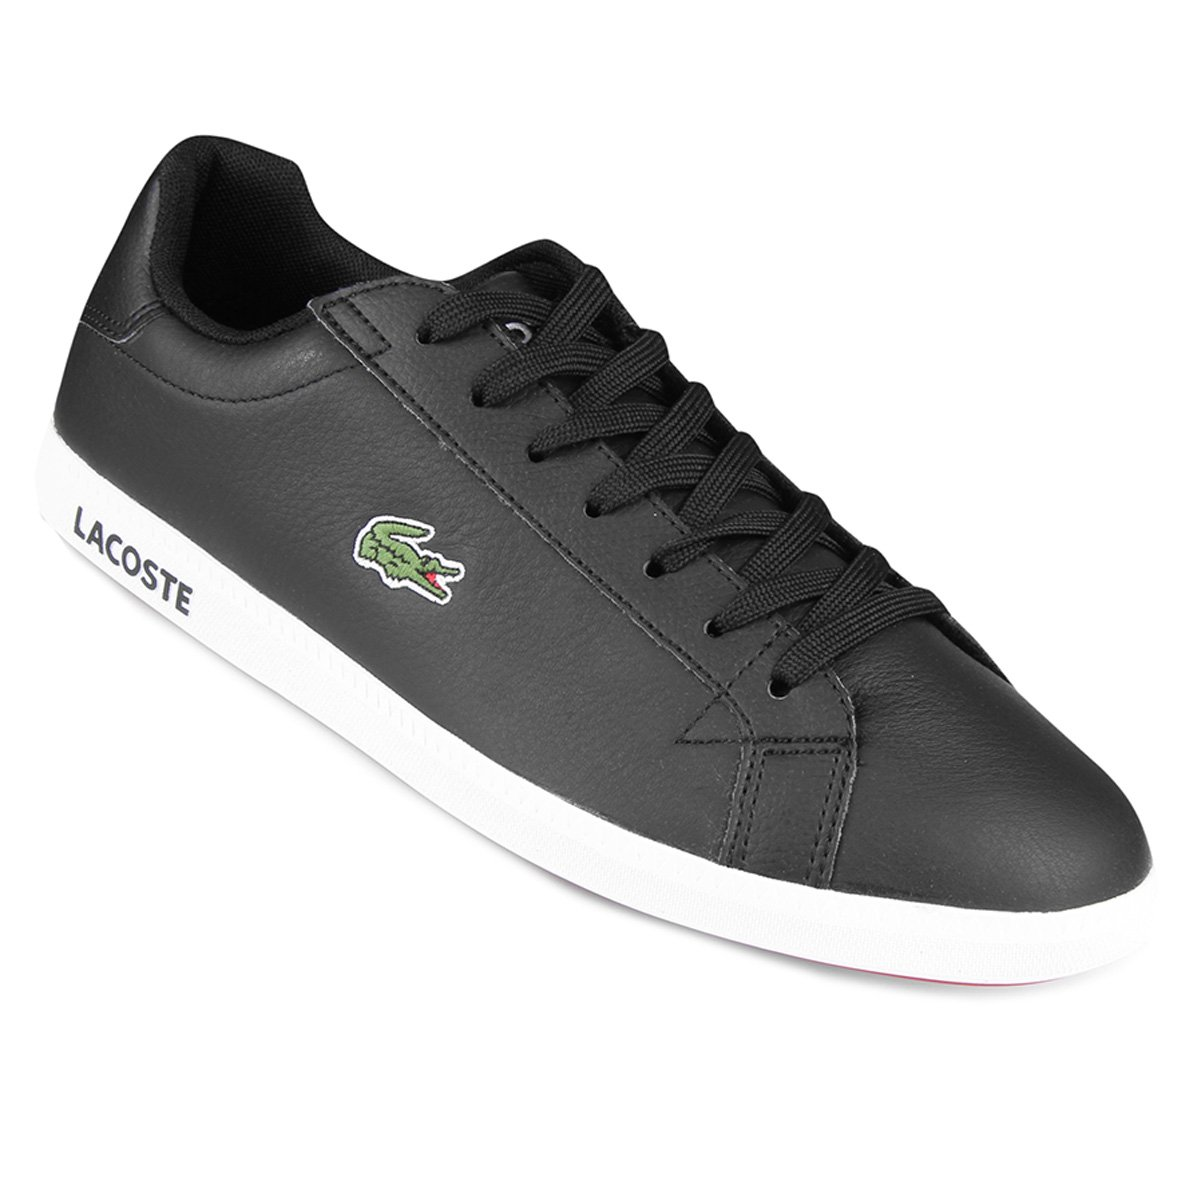 Couro Lcr3 Lcr3 Tênis Gradt Preto Bkbk Gradt Tênis Lacoste Masculino Couro  Lacoste fwqOw5 ... 7ced95549f